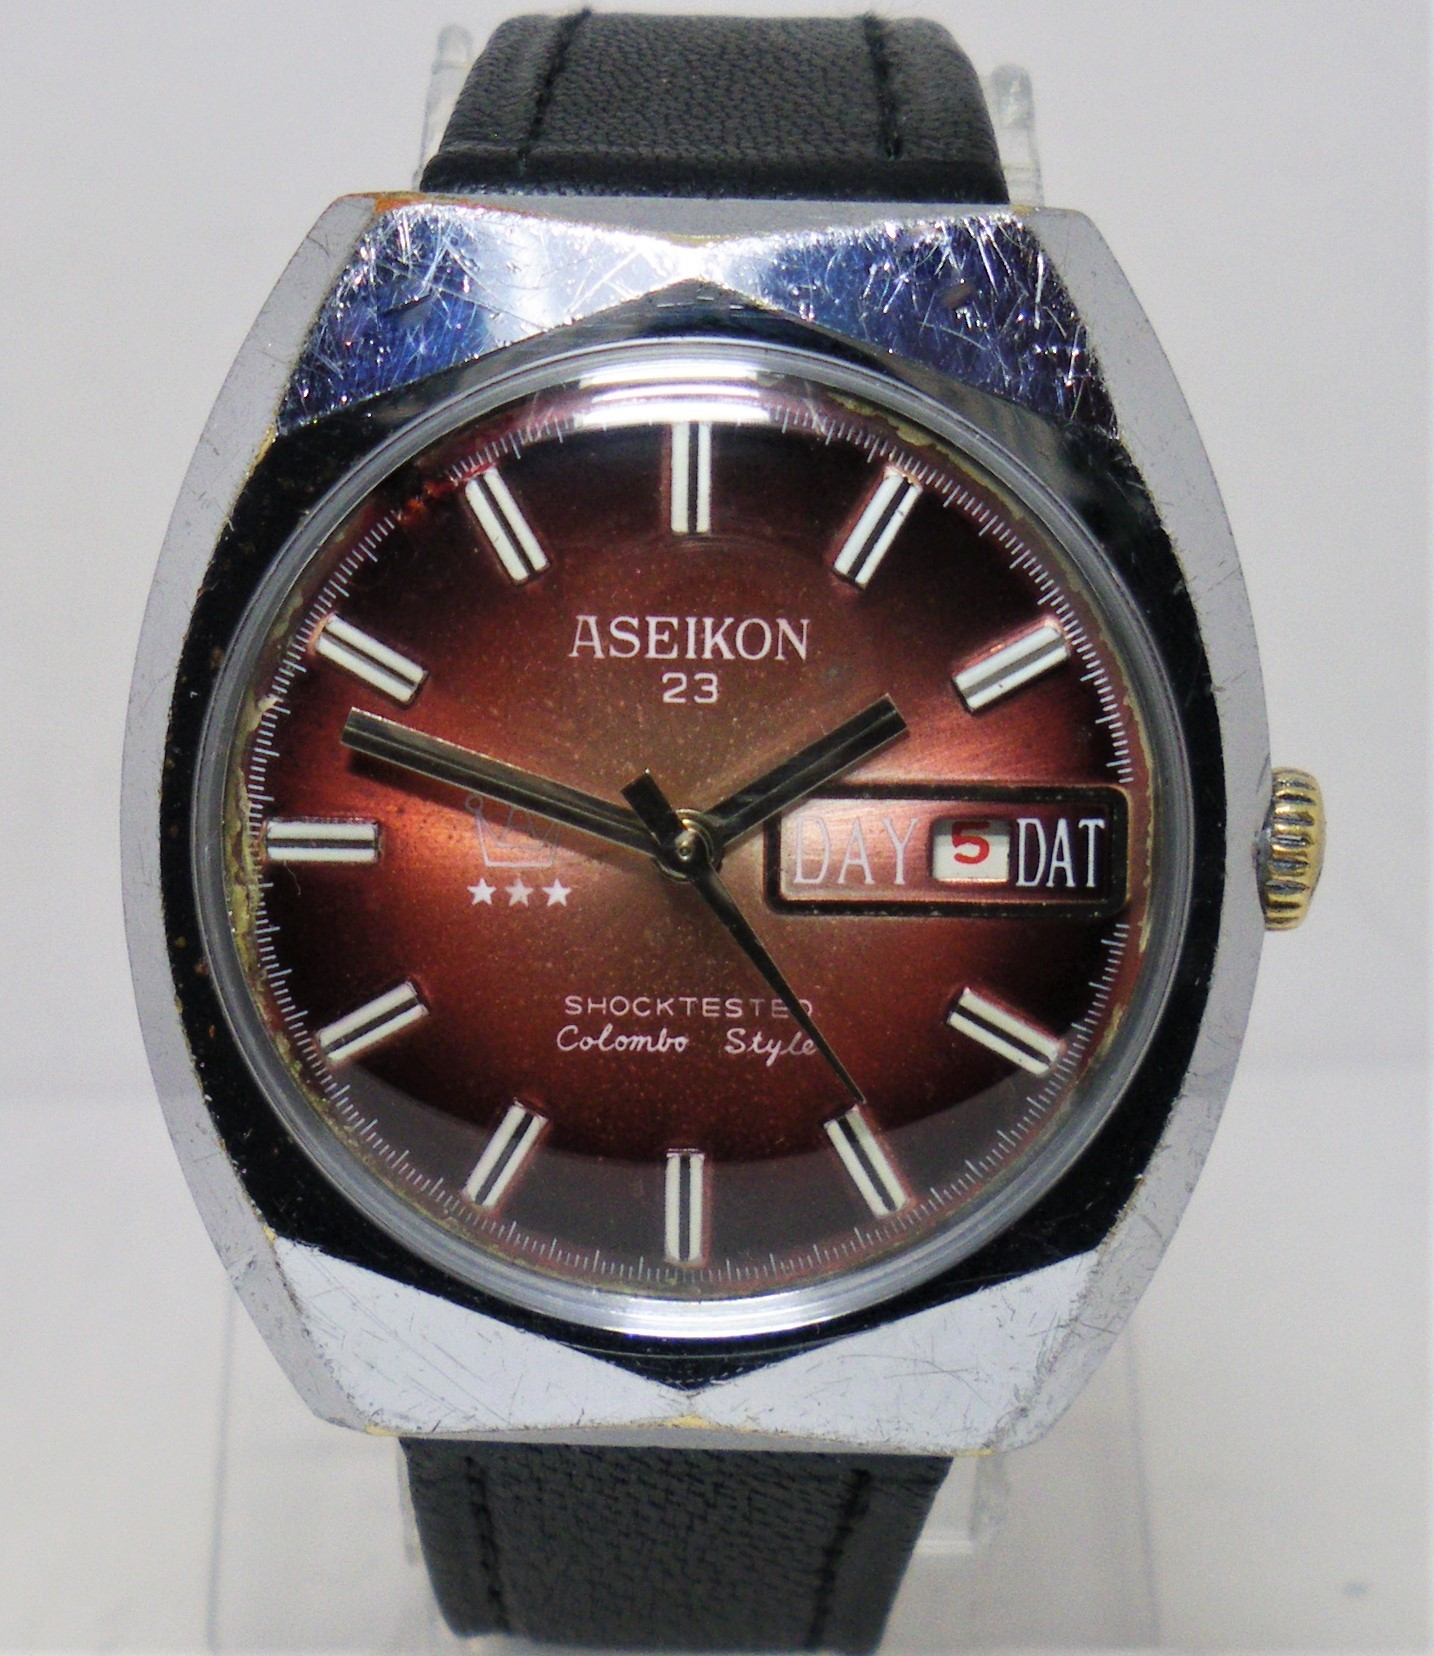 Click image for larger version.  Name:Aseikon 23 branded Ruhla 24-33 Colombo Style Red dial.JPG Views:255 Size:520.7 KB ID:13548371